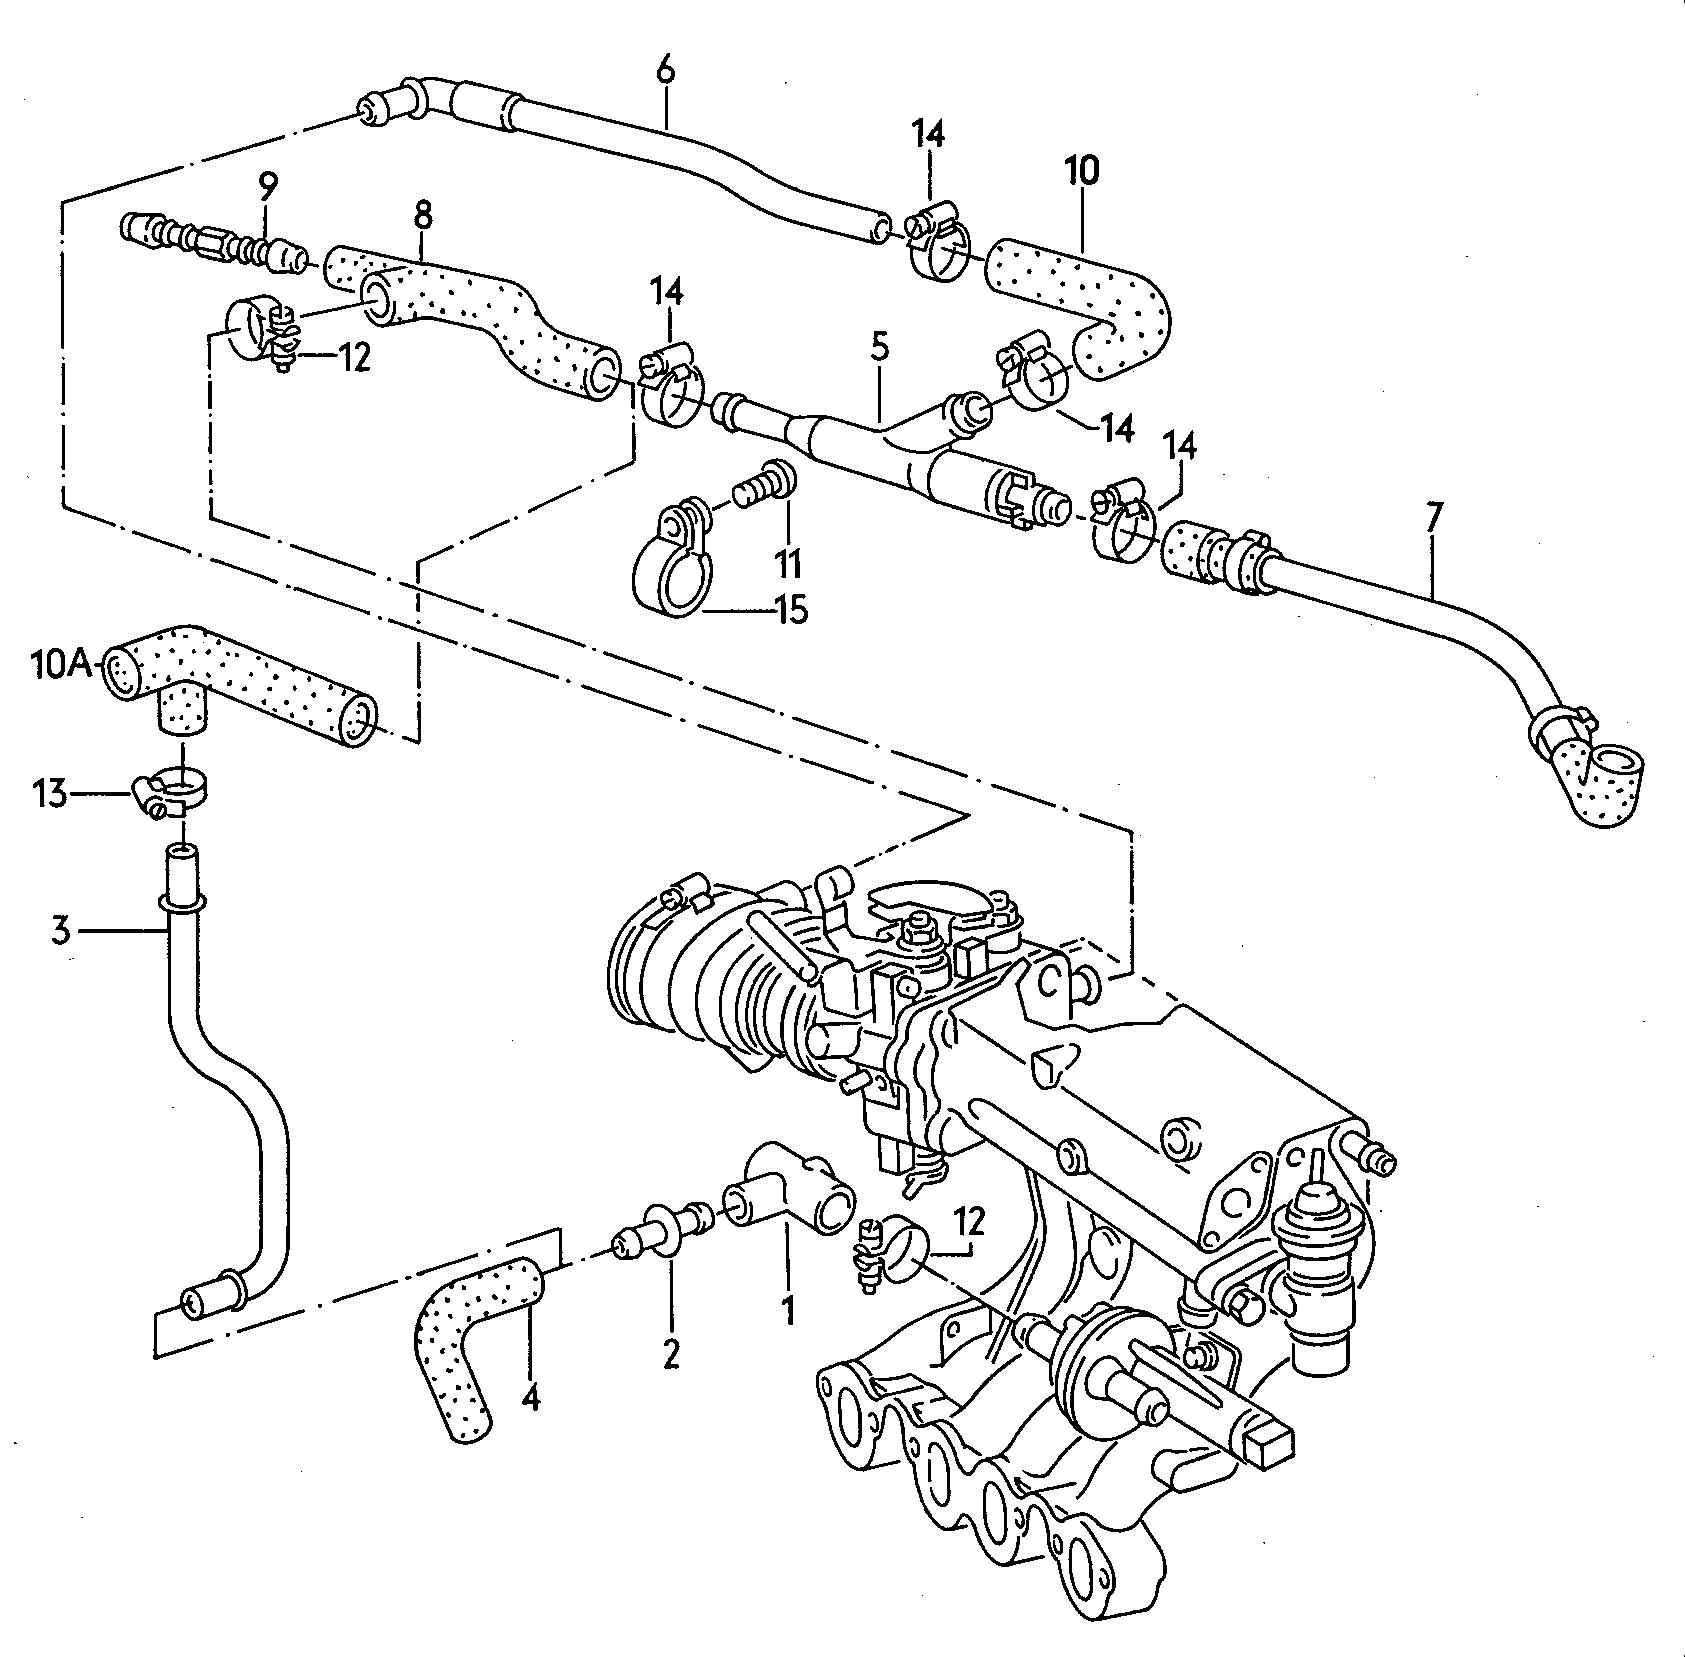 Vw Tsi 2 0t Diagram Engine And Wiring 1964 Alternator T Parts Plete Diagrams Volkswagen Gti As Well Thing Vacuum